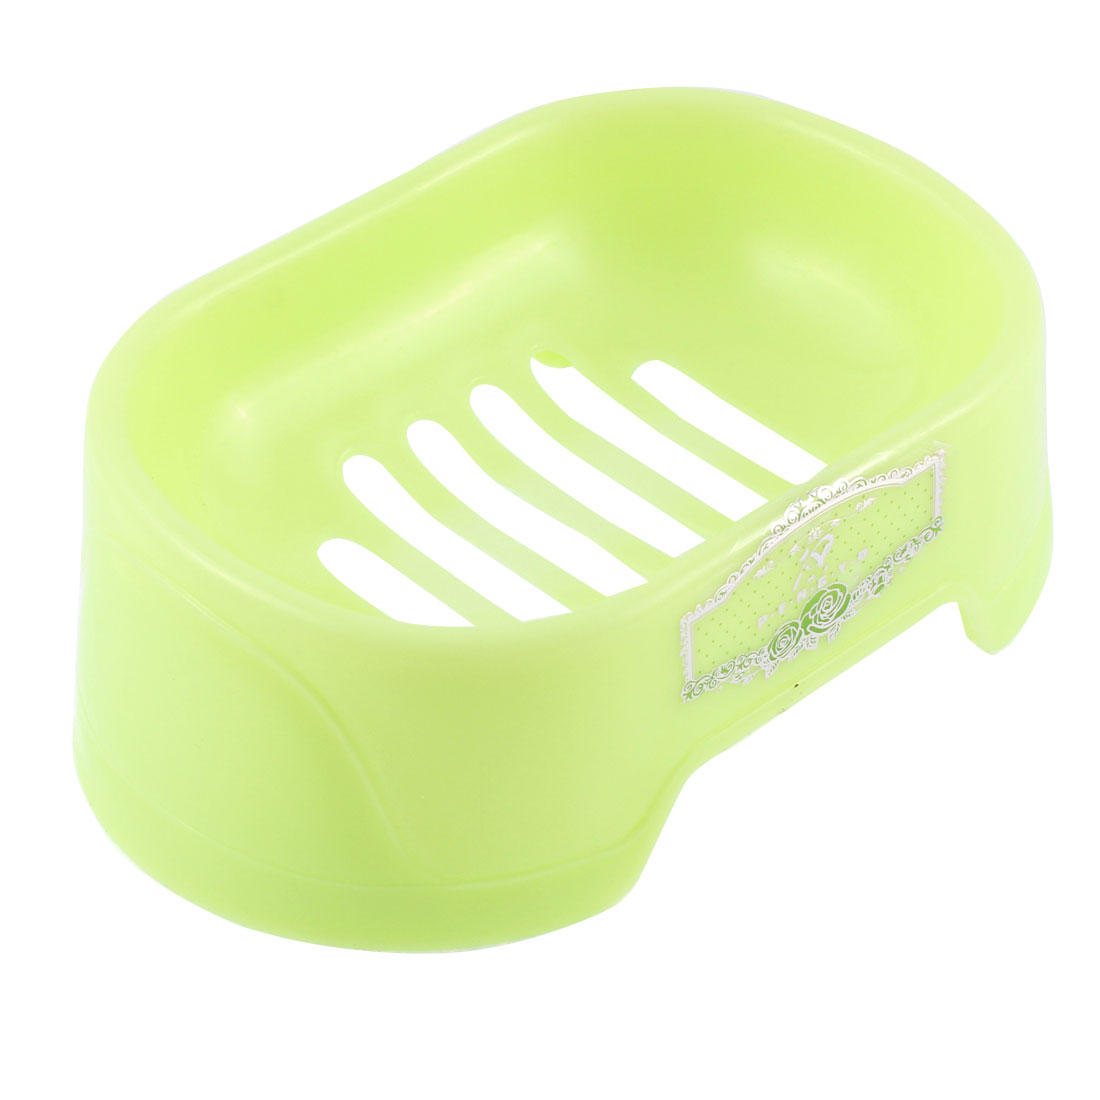 Washroom Plastic Rectangular Shaped Soap Dish Holder Container Box Case Light Green